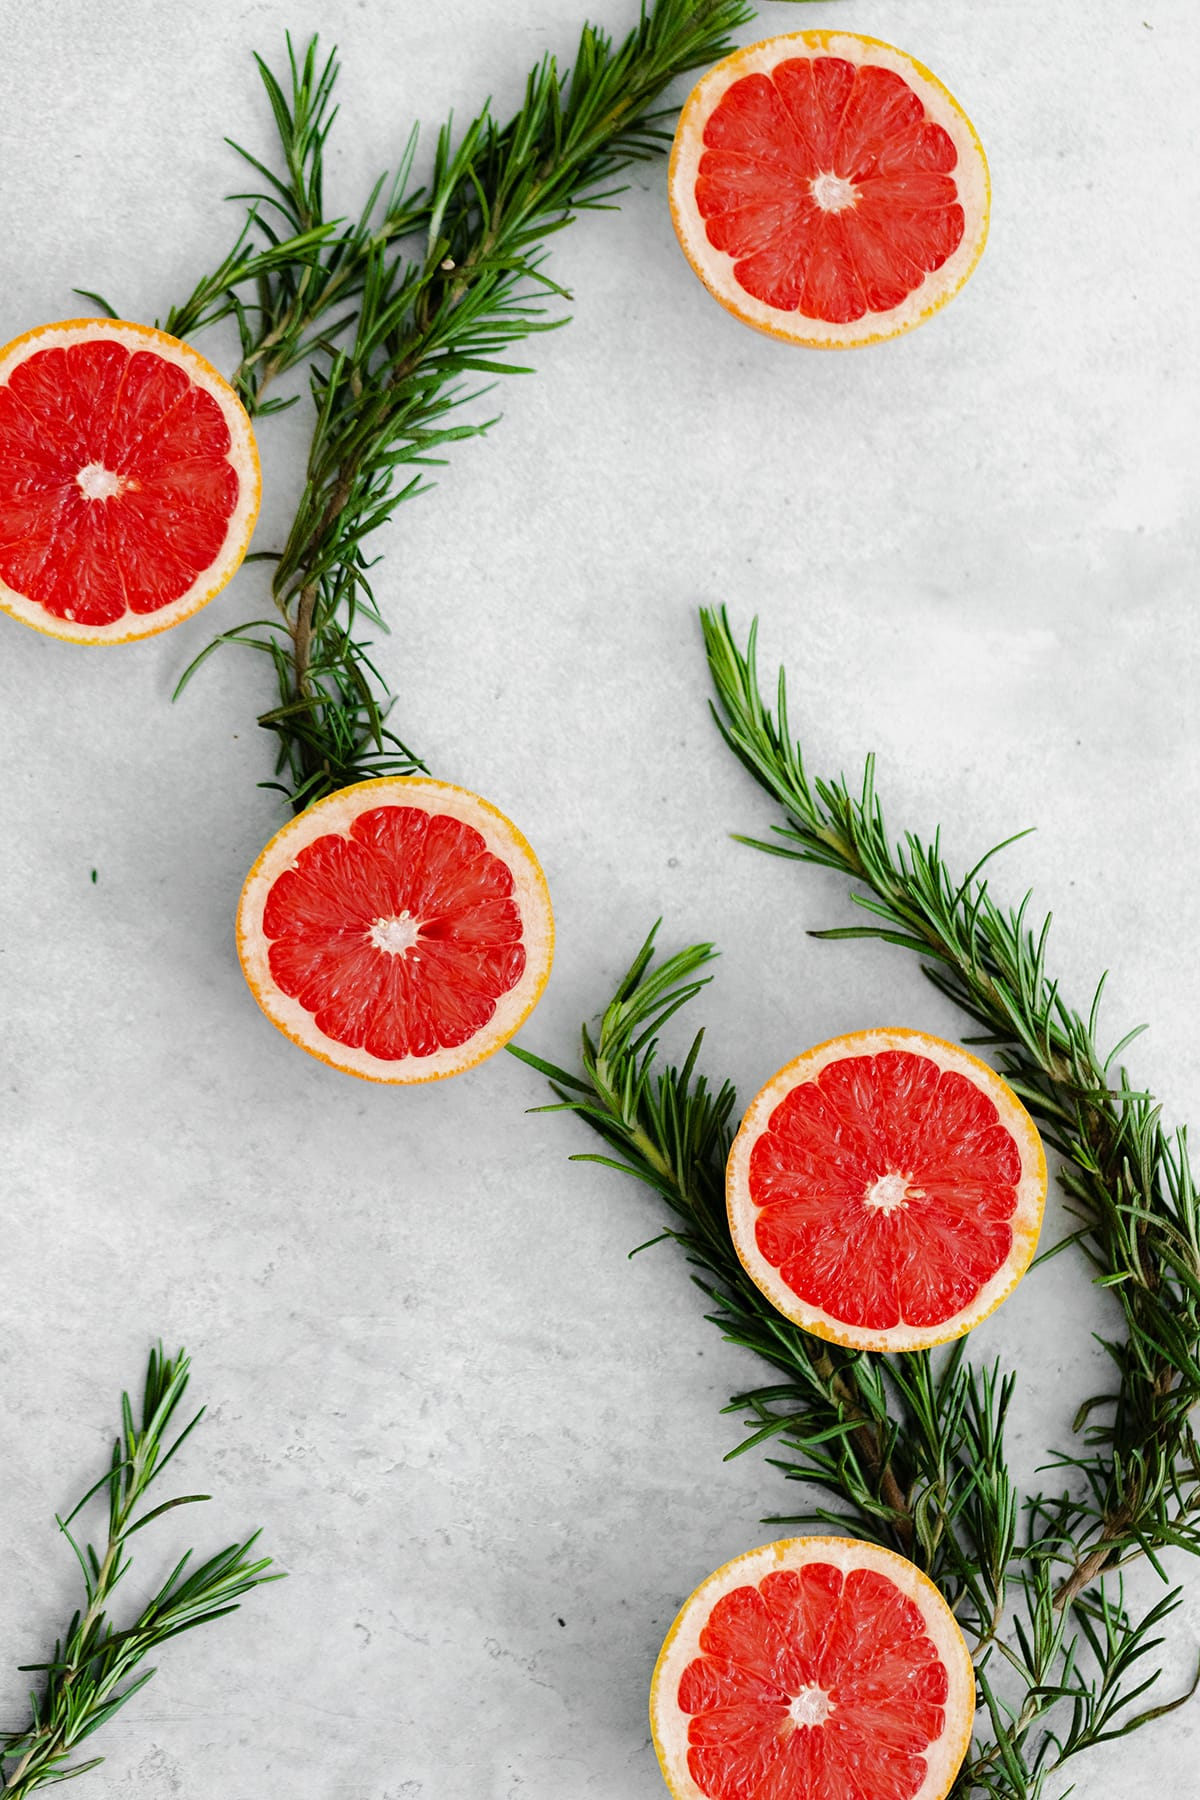 Grapefruits cut in half, laid out in an S shape with fresh rosemary connecting each piece. Cut side up on a gray background.